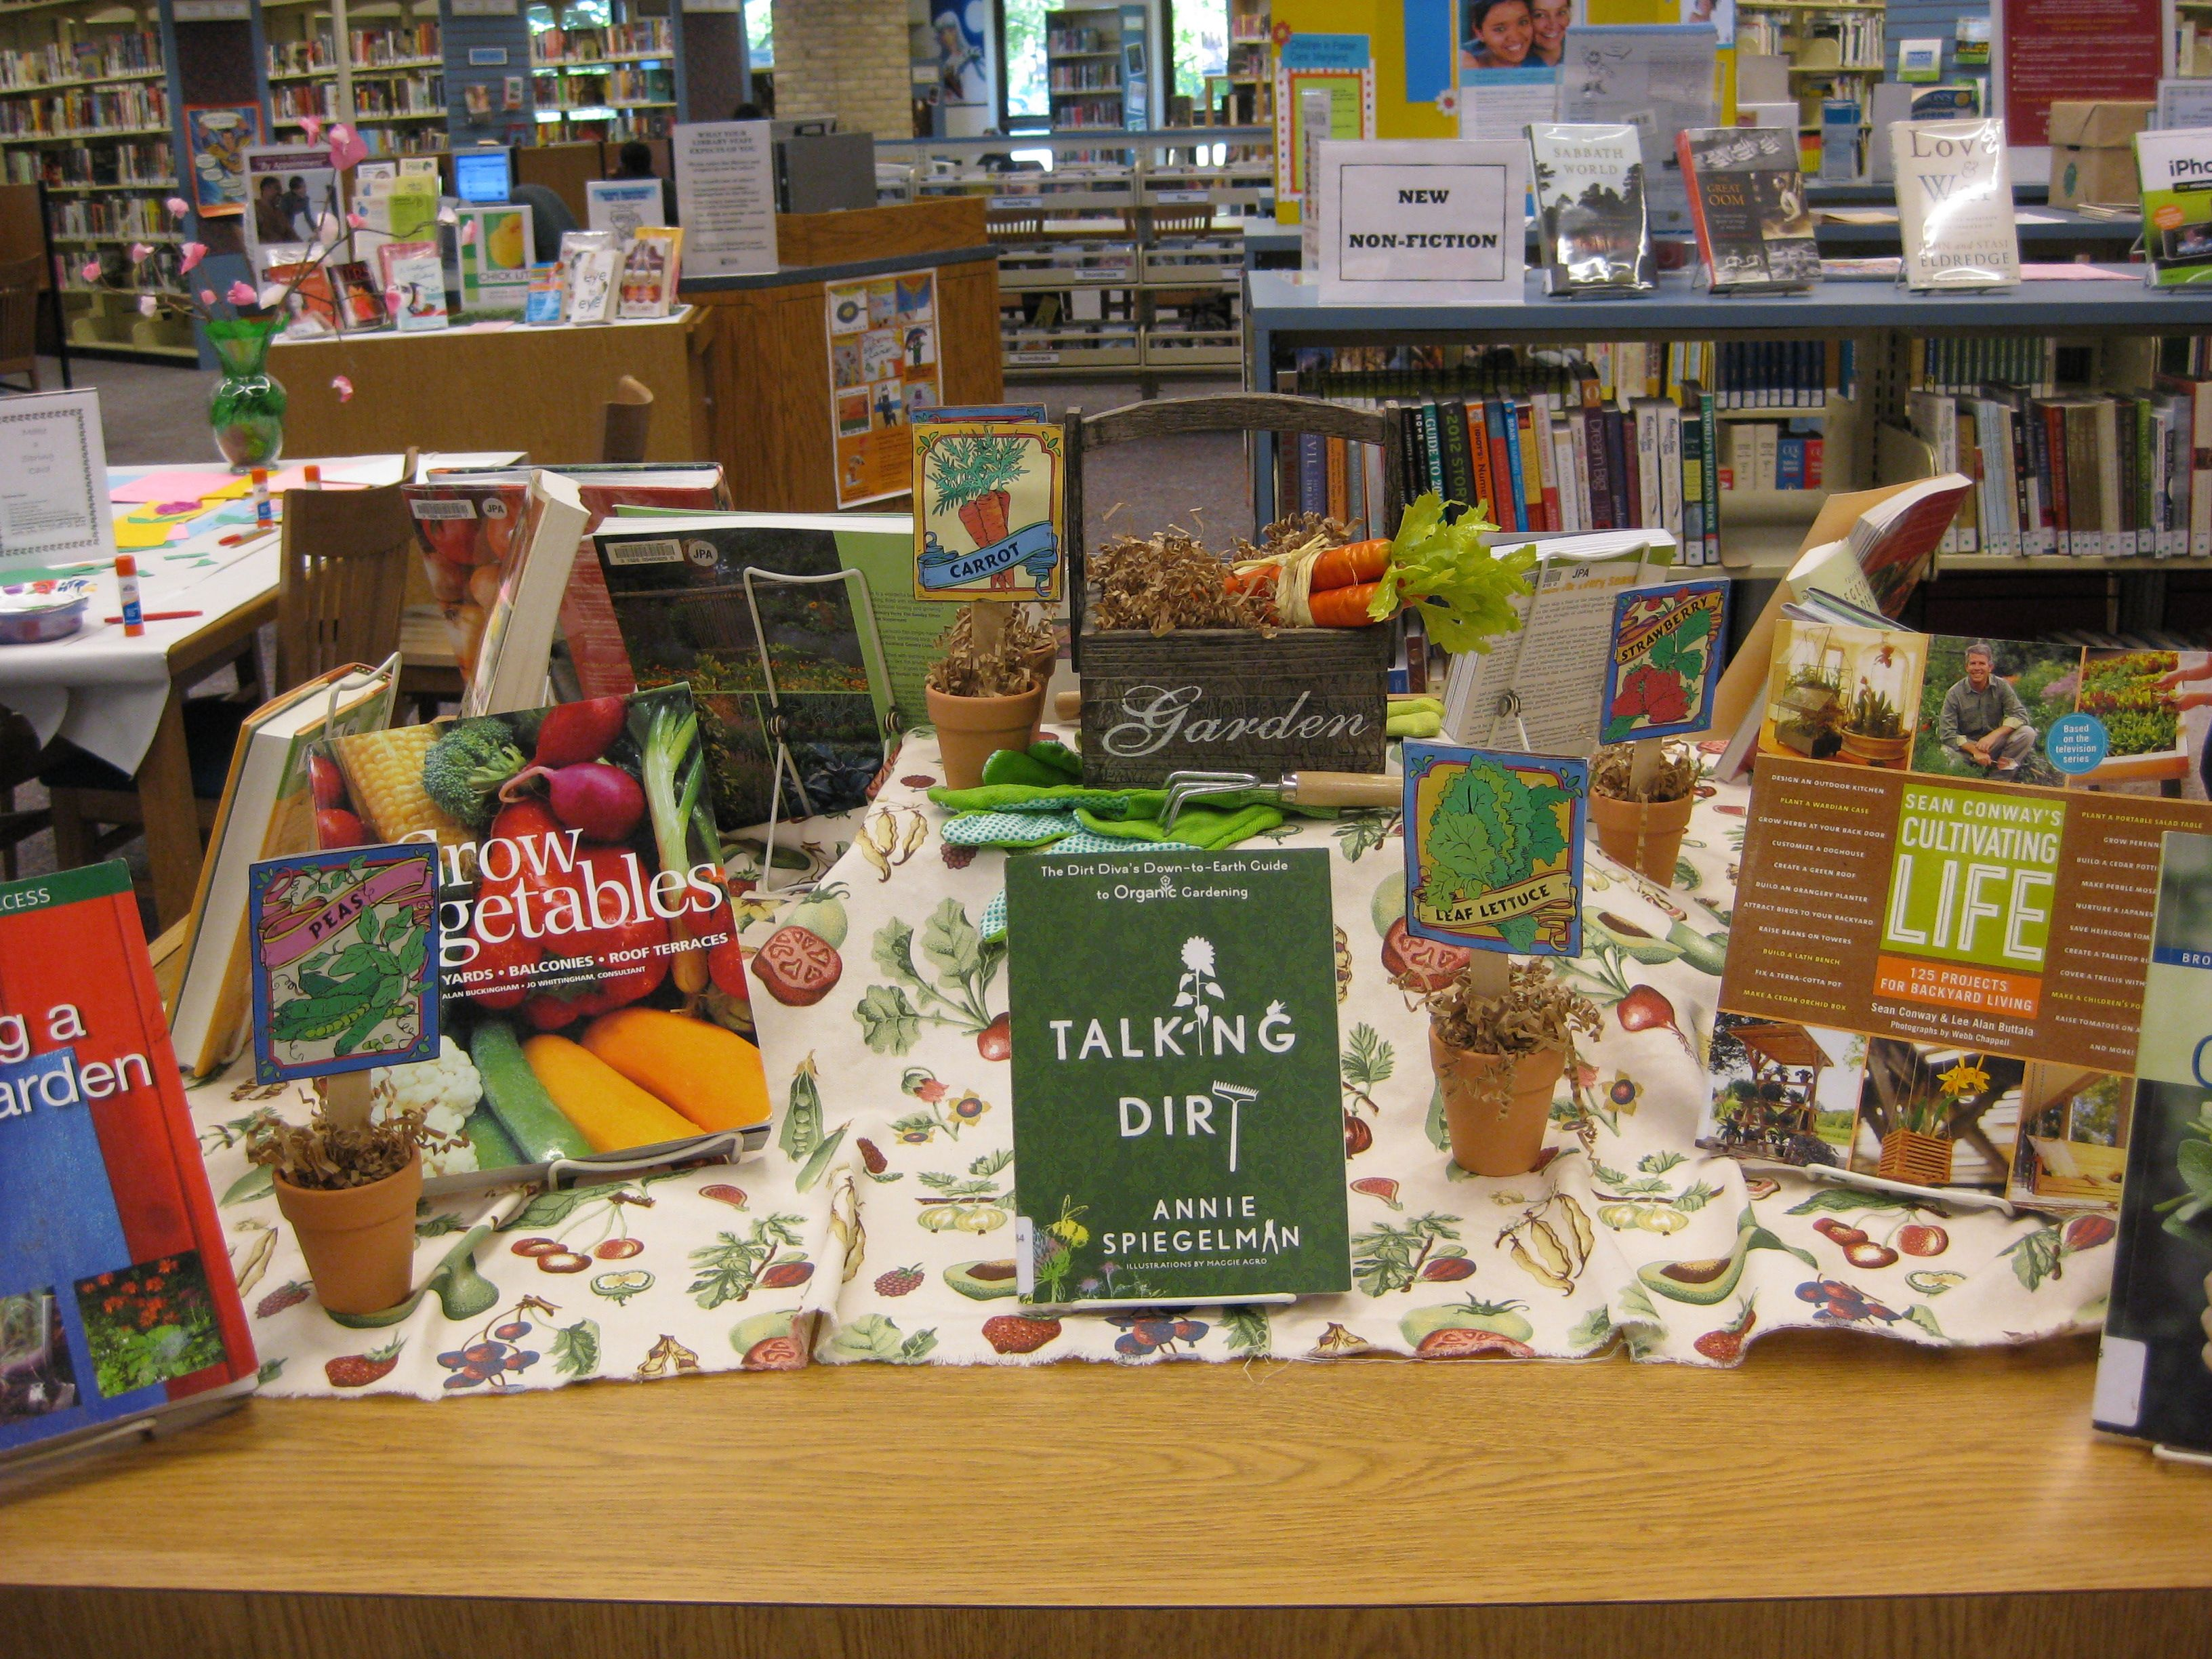 Librarydisplayideas Gardening @ The Library